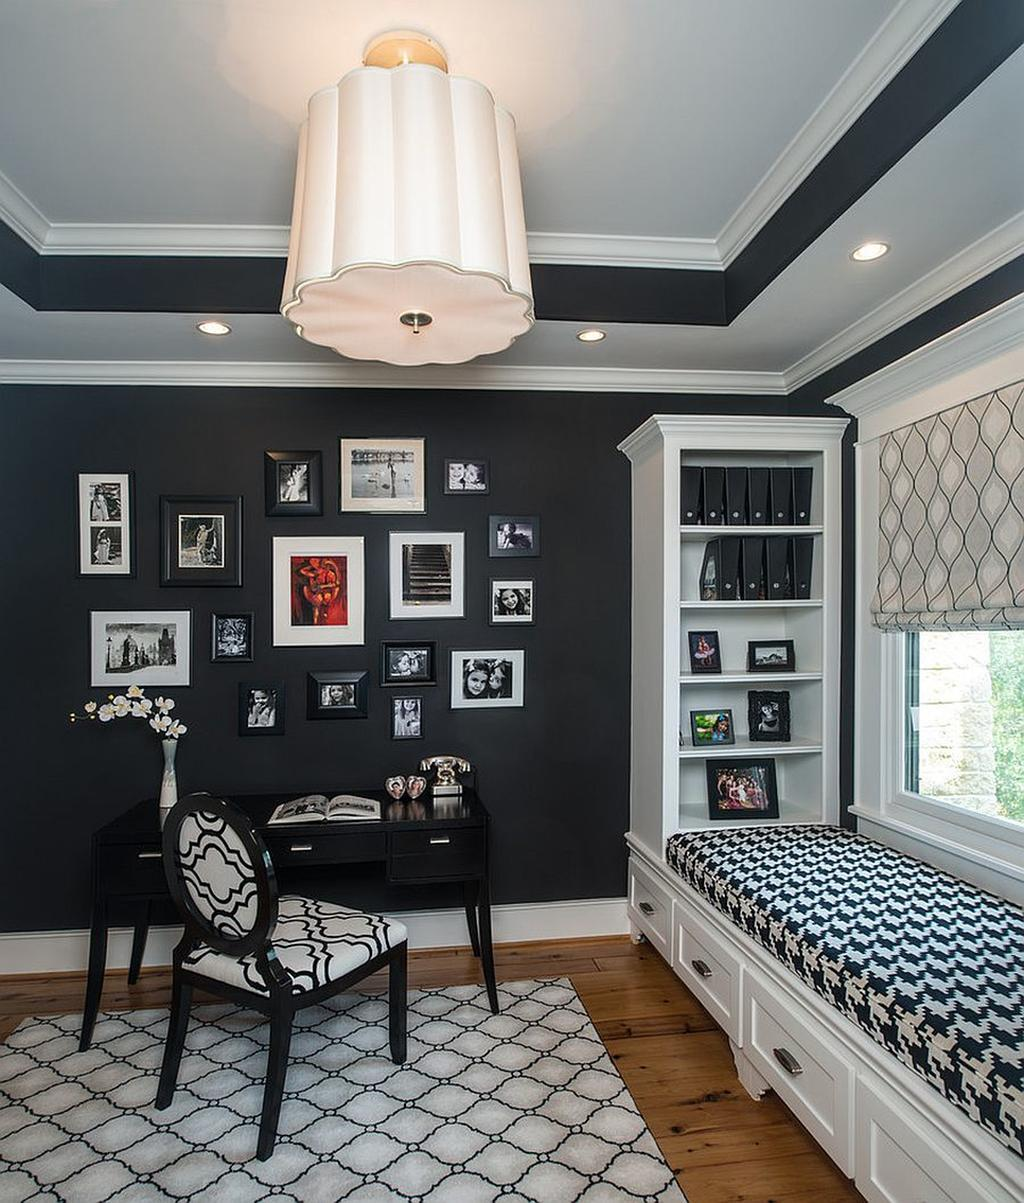 8 Inspirational Home Office Ideas and Color Schemes F 2019